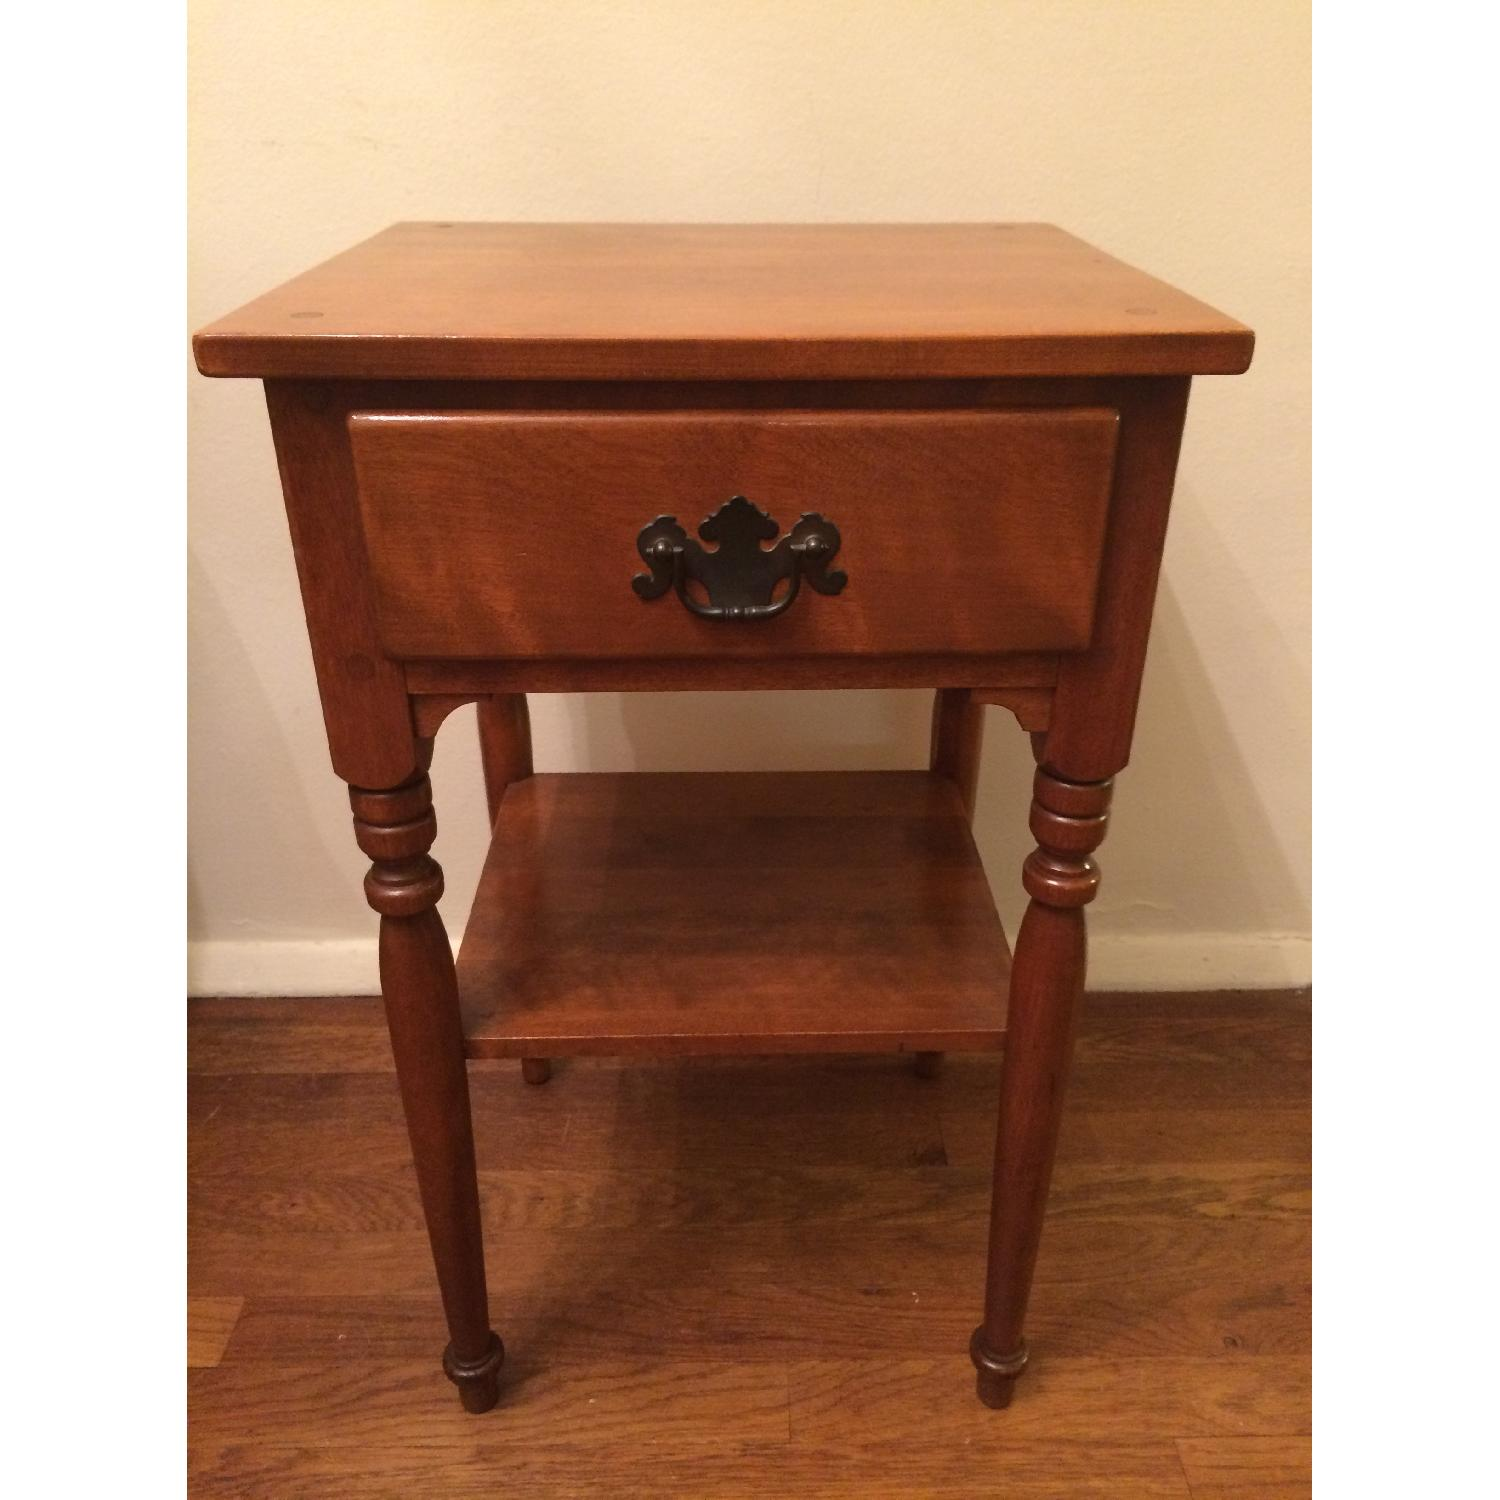 Ethan Allen Vintage Solid Wood Small Table w/ Drawer-0